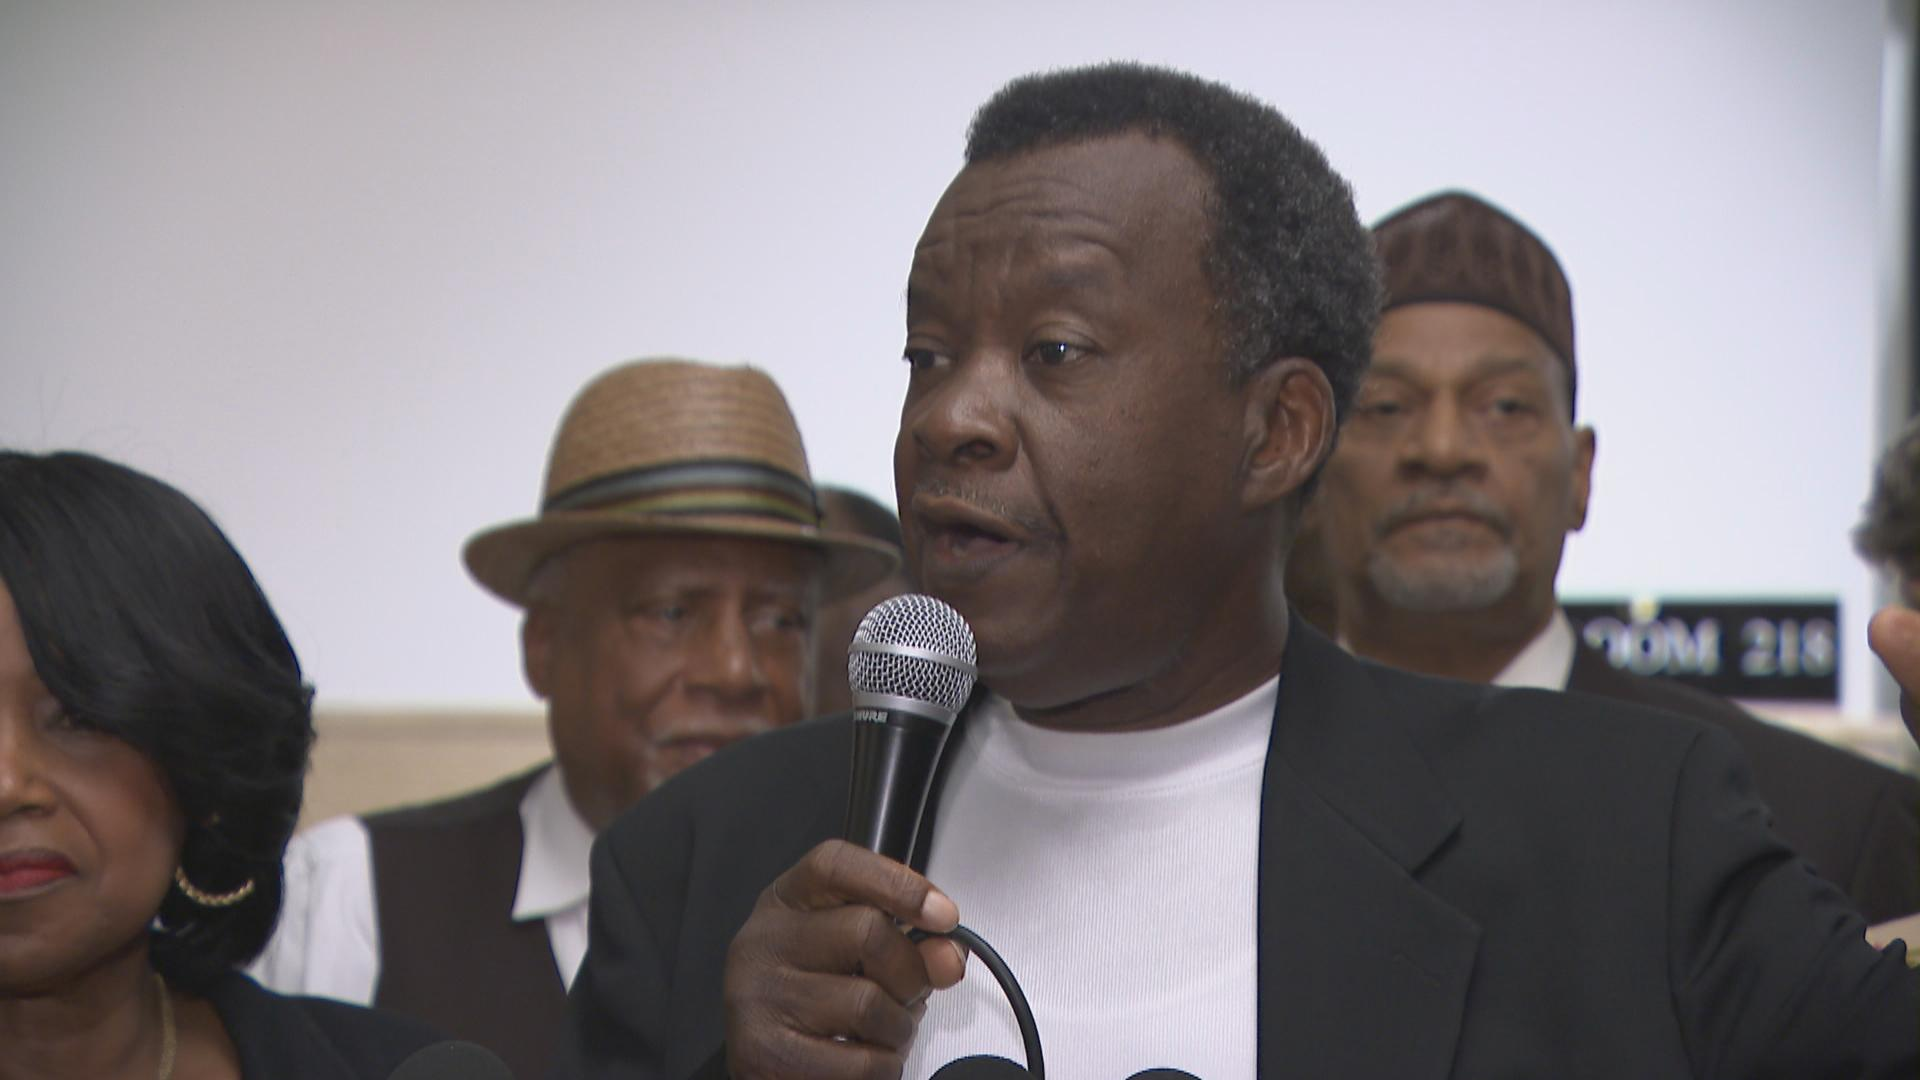 """This is not a political situation. We've been doing this for the last 10, 15, 20 years,"" Chicago mayoral candidate Willie Wilson said Wednesday, Aug. 1, 2018 of his foundation's giveaways of money. (Chicago Tonight)"